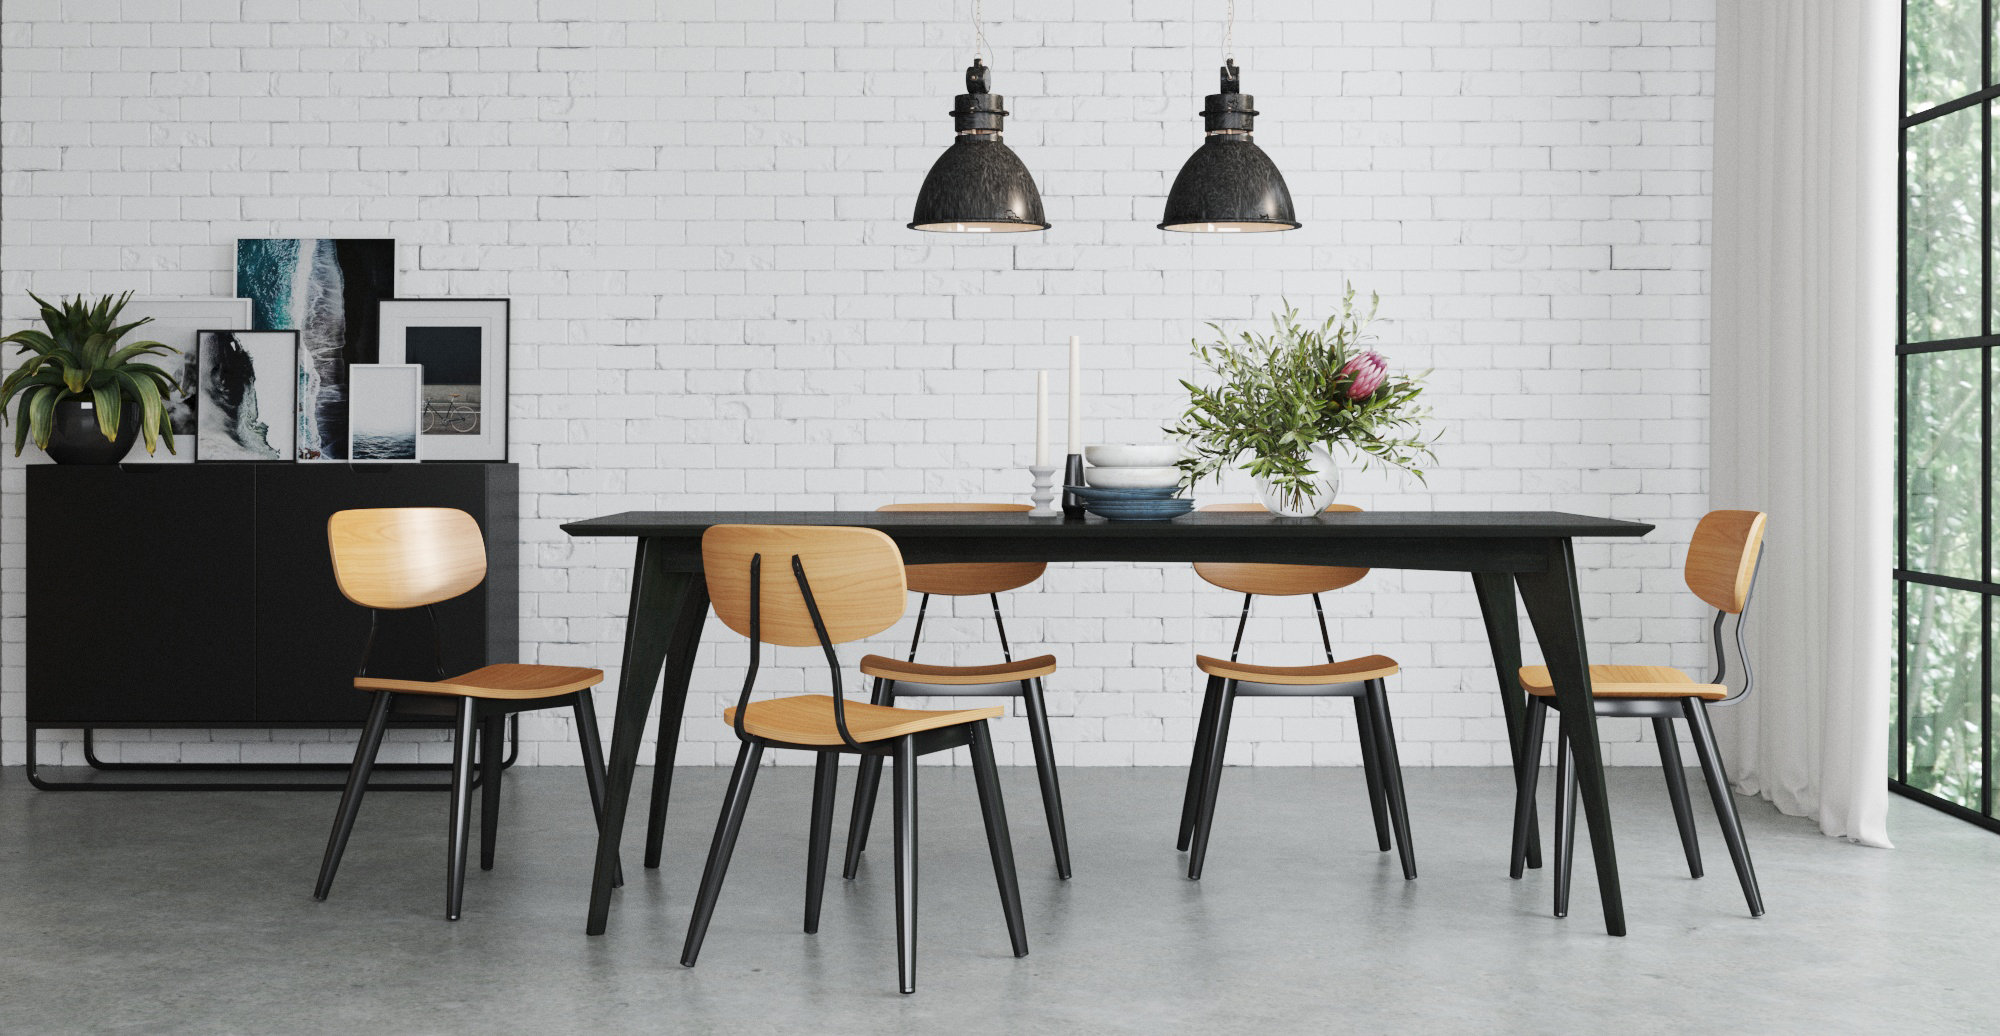 Brosa Gina Dining Table 200cm styled in modern contemporary dining room